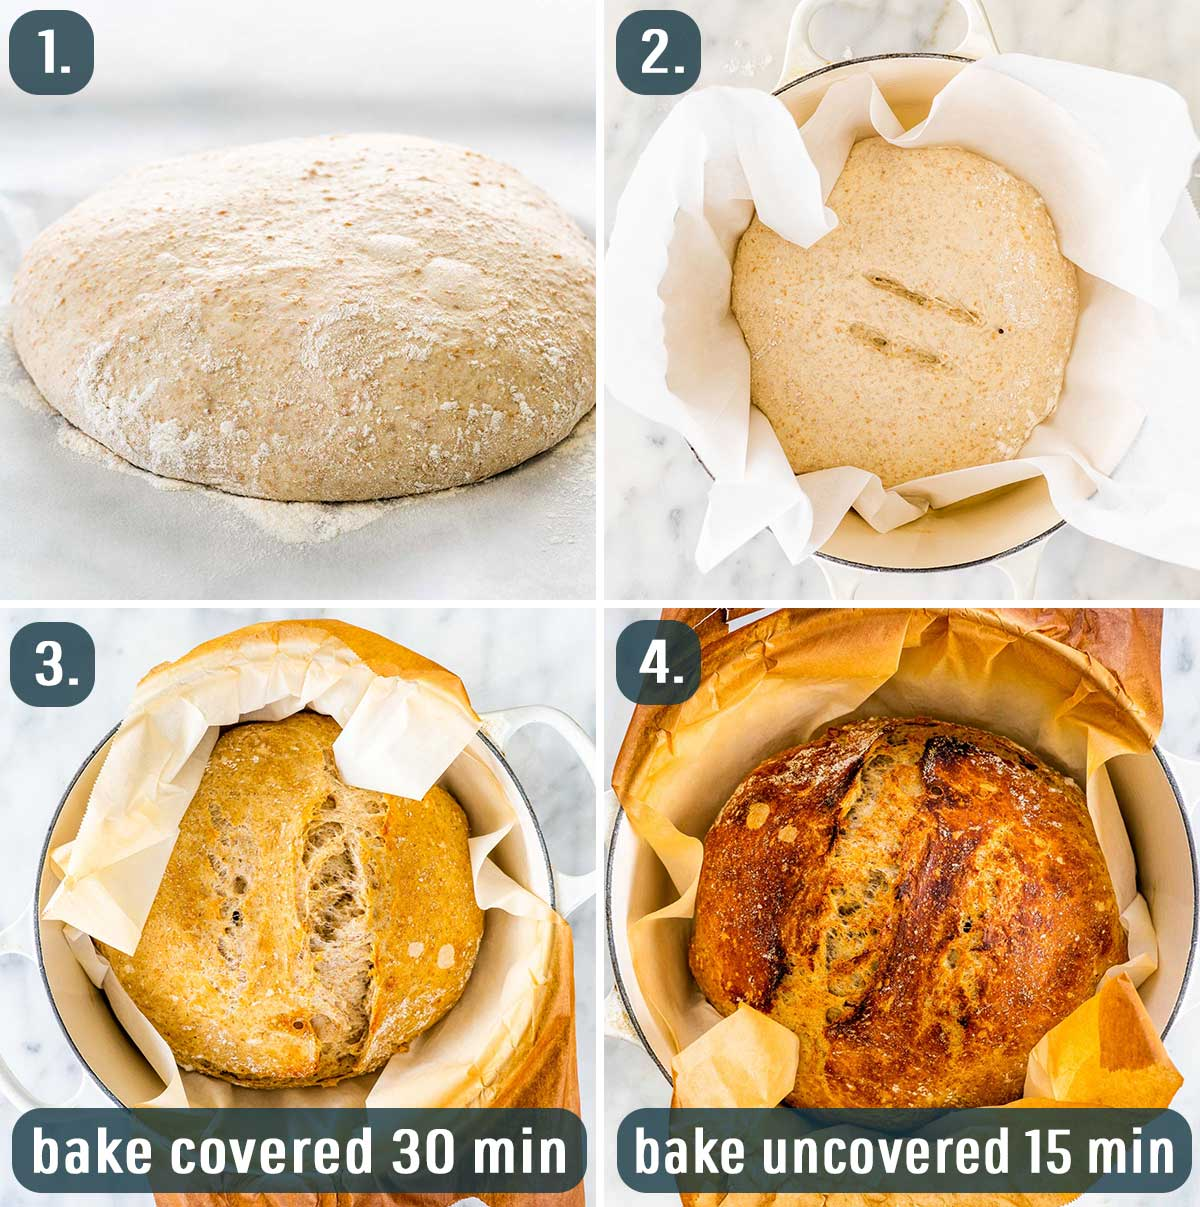 process shots showing how to bake no knead whole wheat bread.